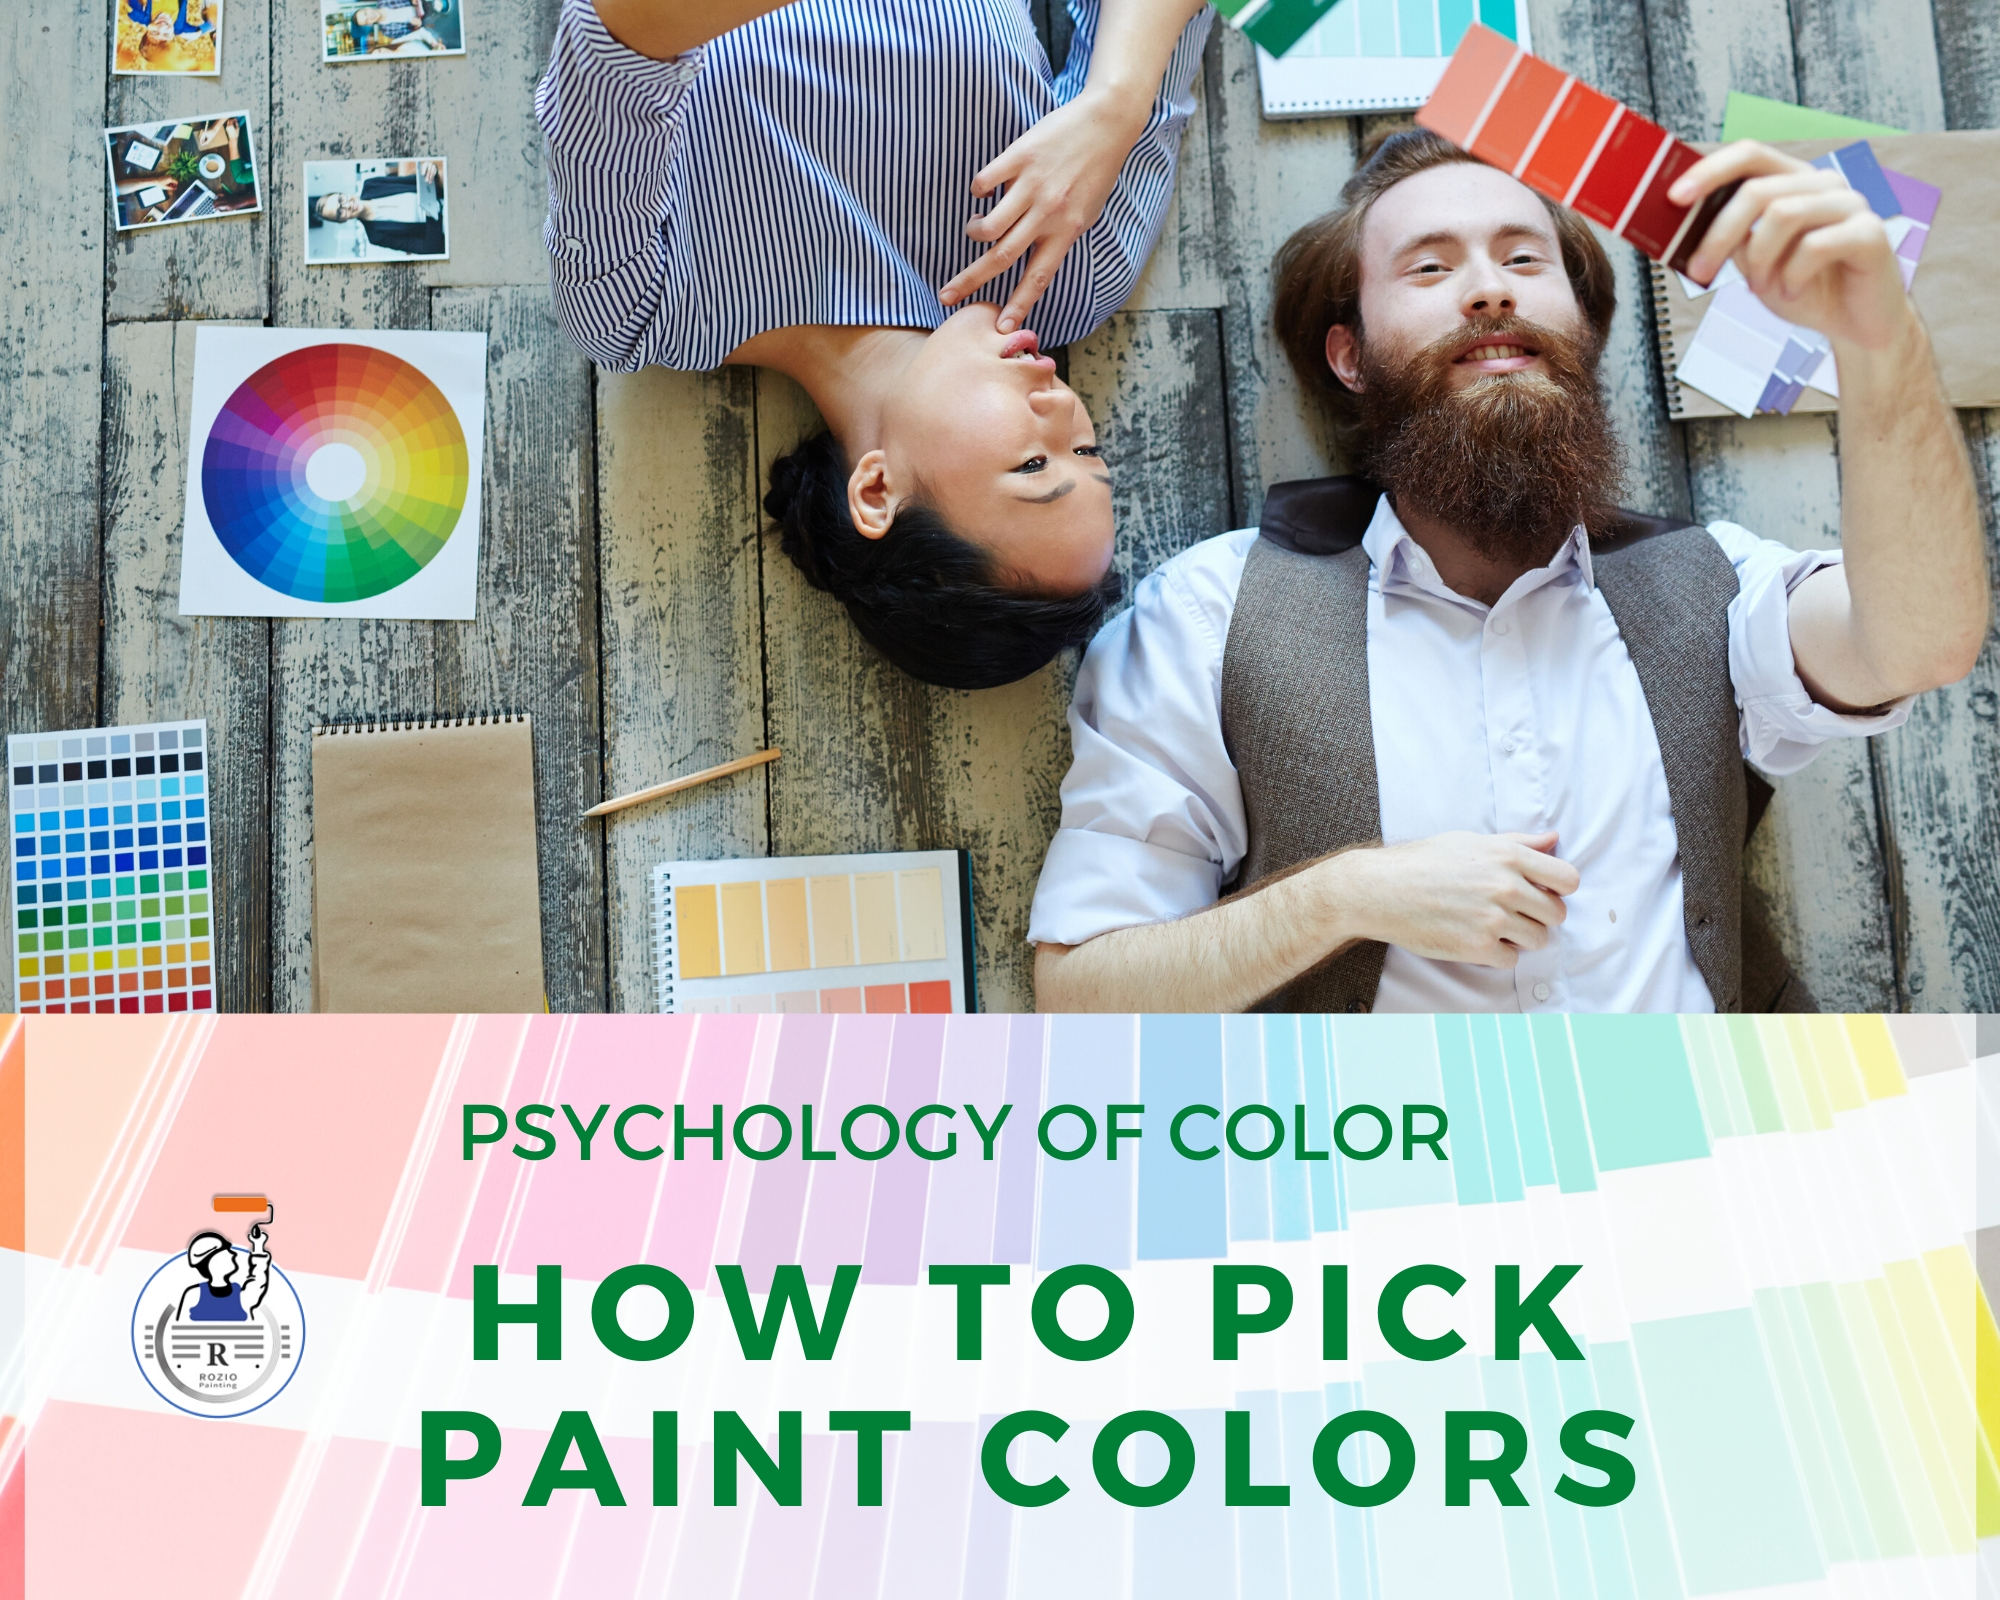 Psychology of Color: How to pick paint colors